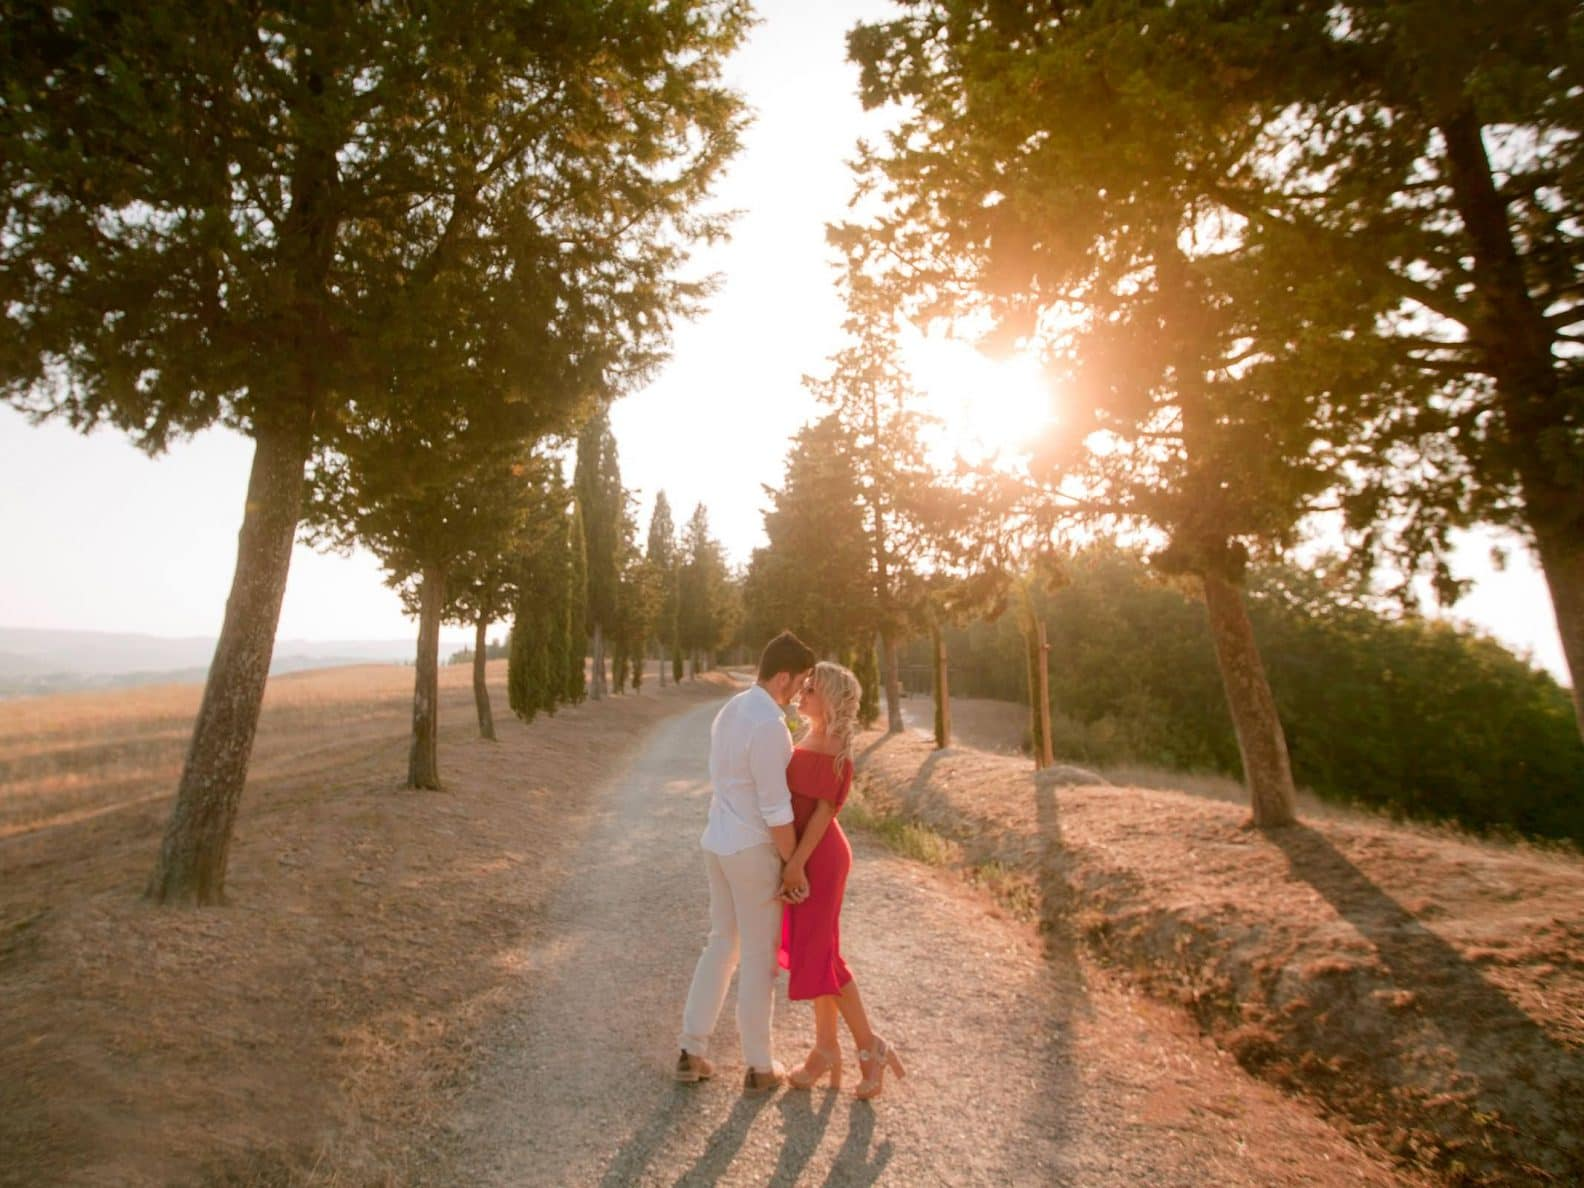 epic photos in tuscany for an engagement session